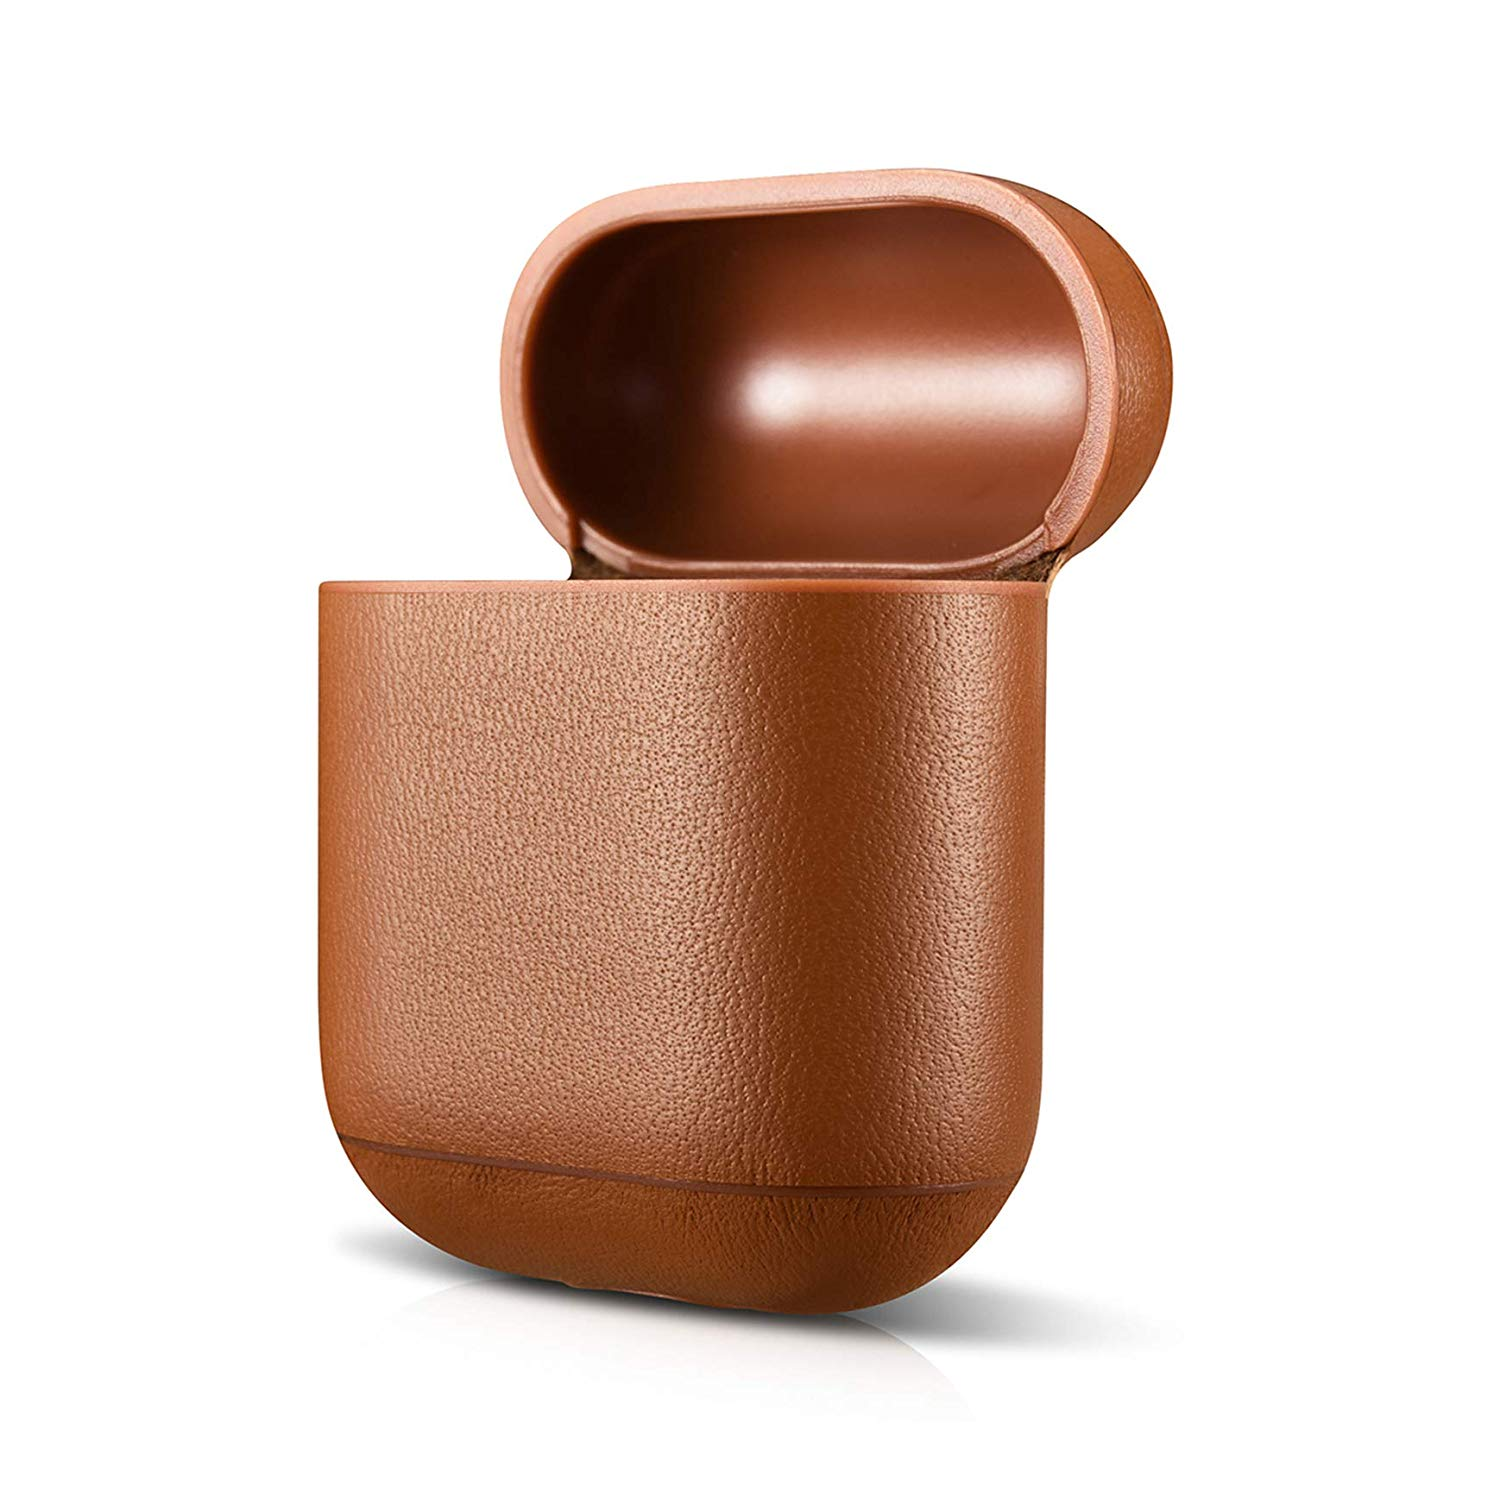 Leather Apple AirPods Case 4